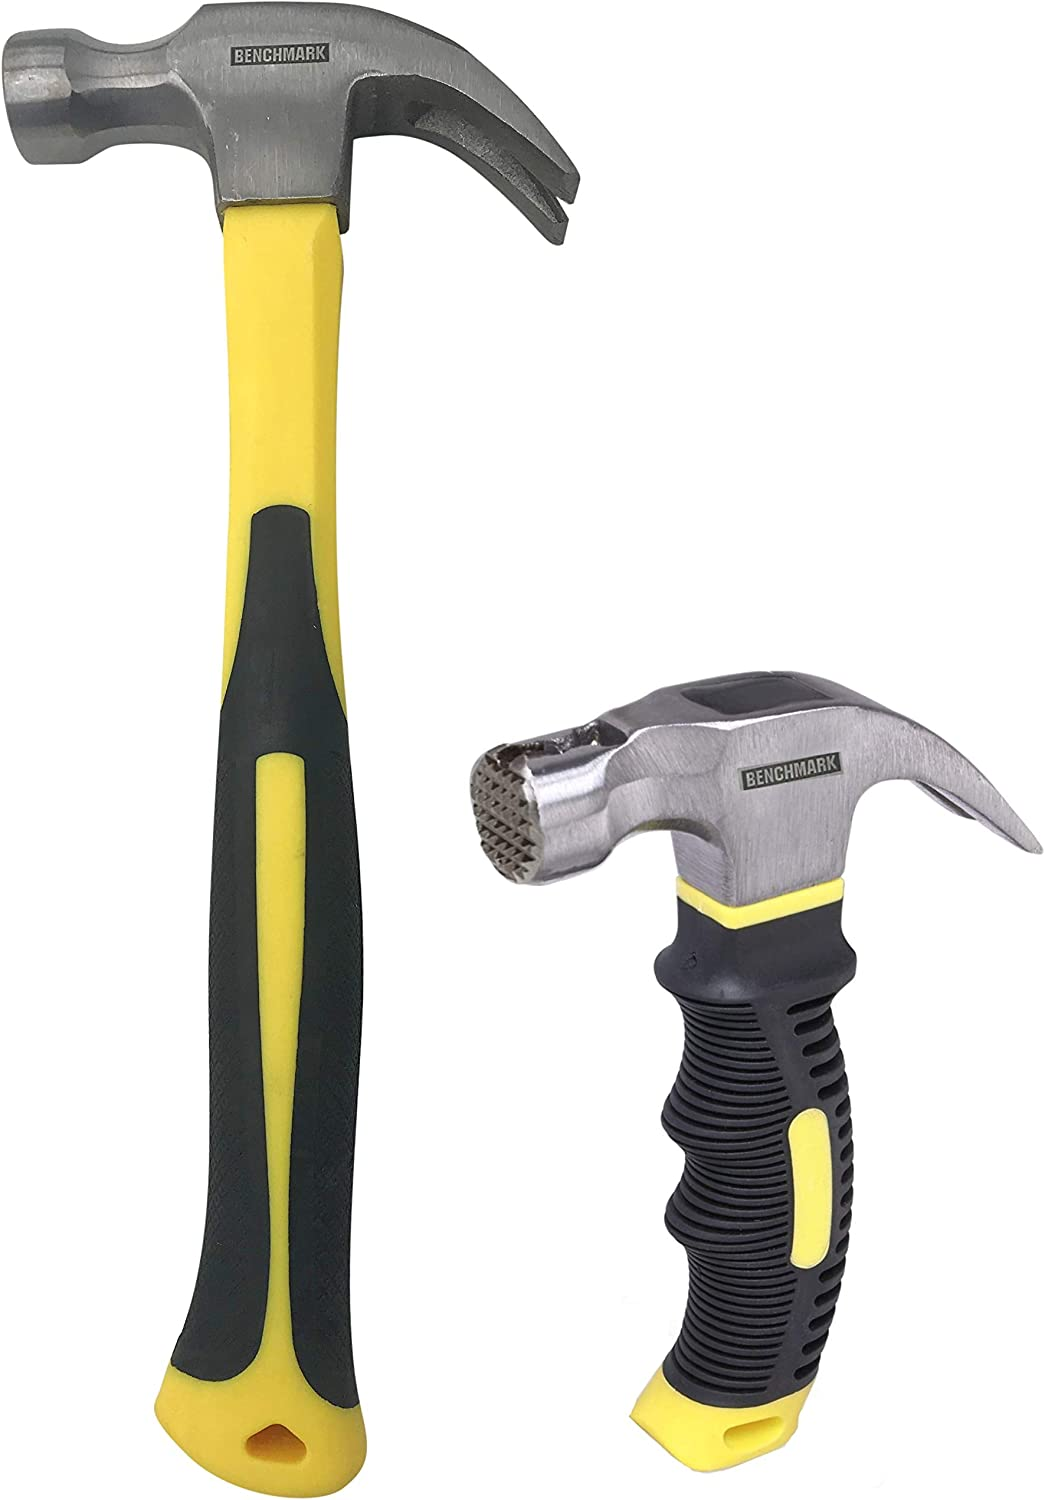 Benchmark - 2 Piece Hammer Set; 16 OZ Claw Hammer & 8 OZ. Mini Claw Hammer with Magnetic Head; Shock Absorbing Rubber Grips, Durable Fiberglass Handles And Polished Steel Heads